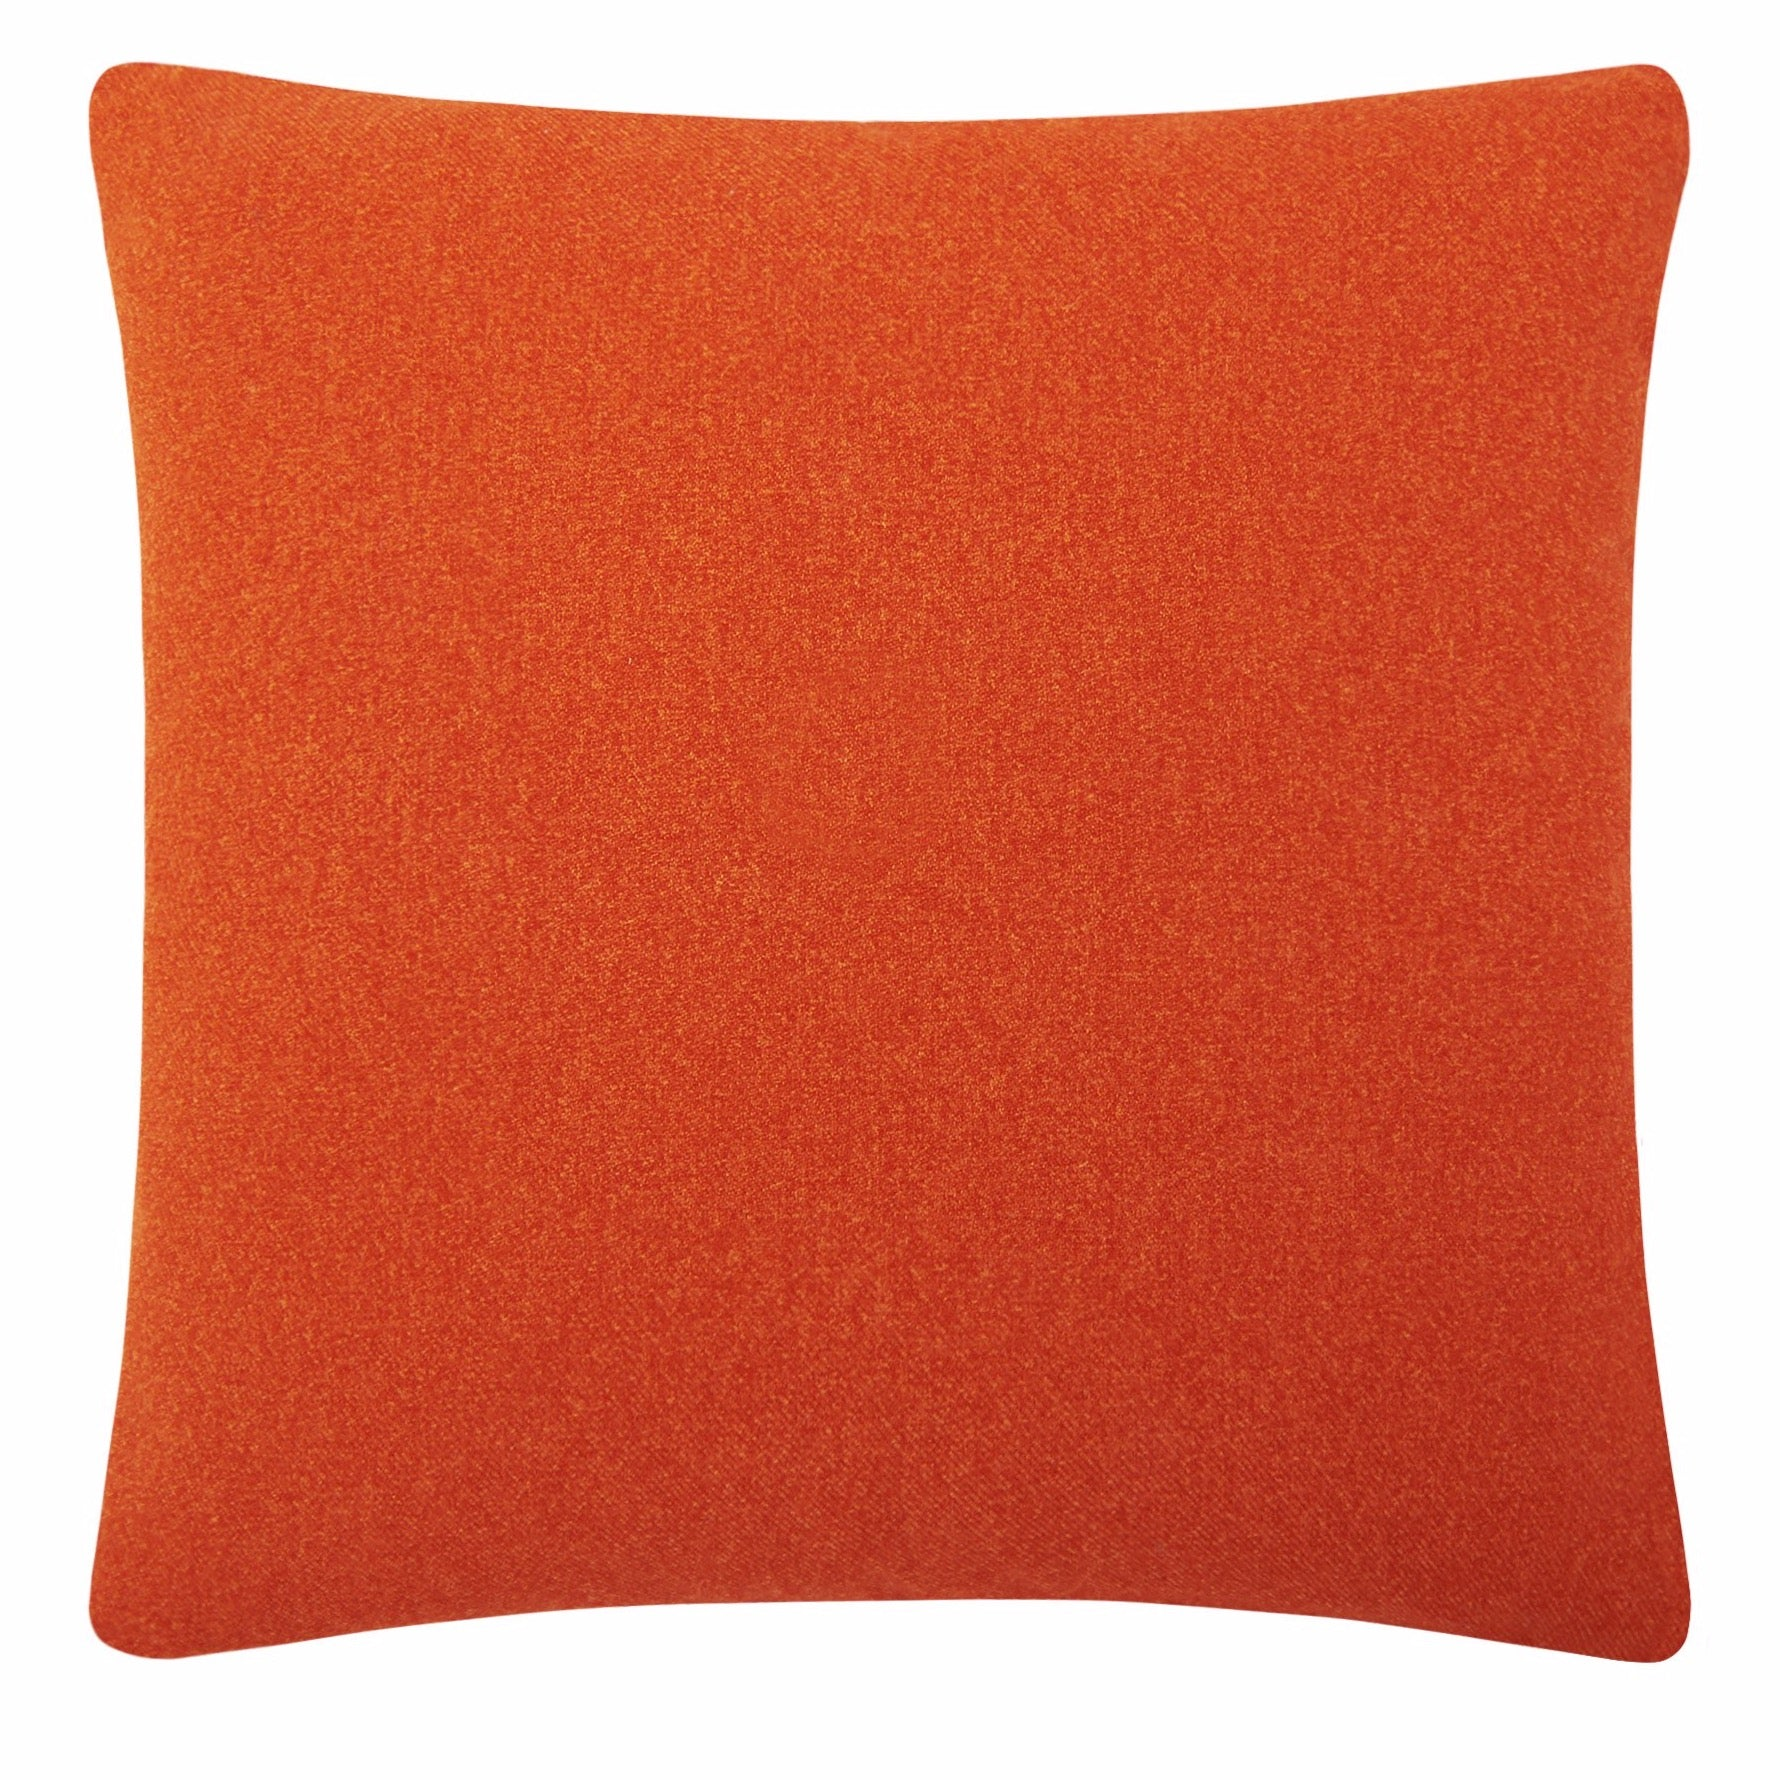 ORANGE colour splash cushion